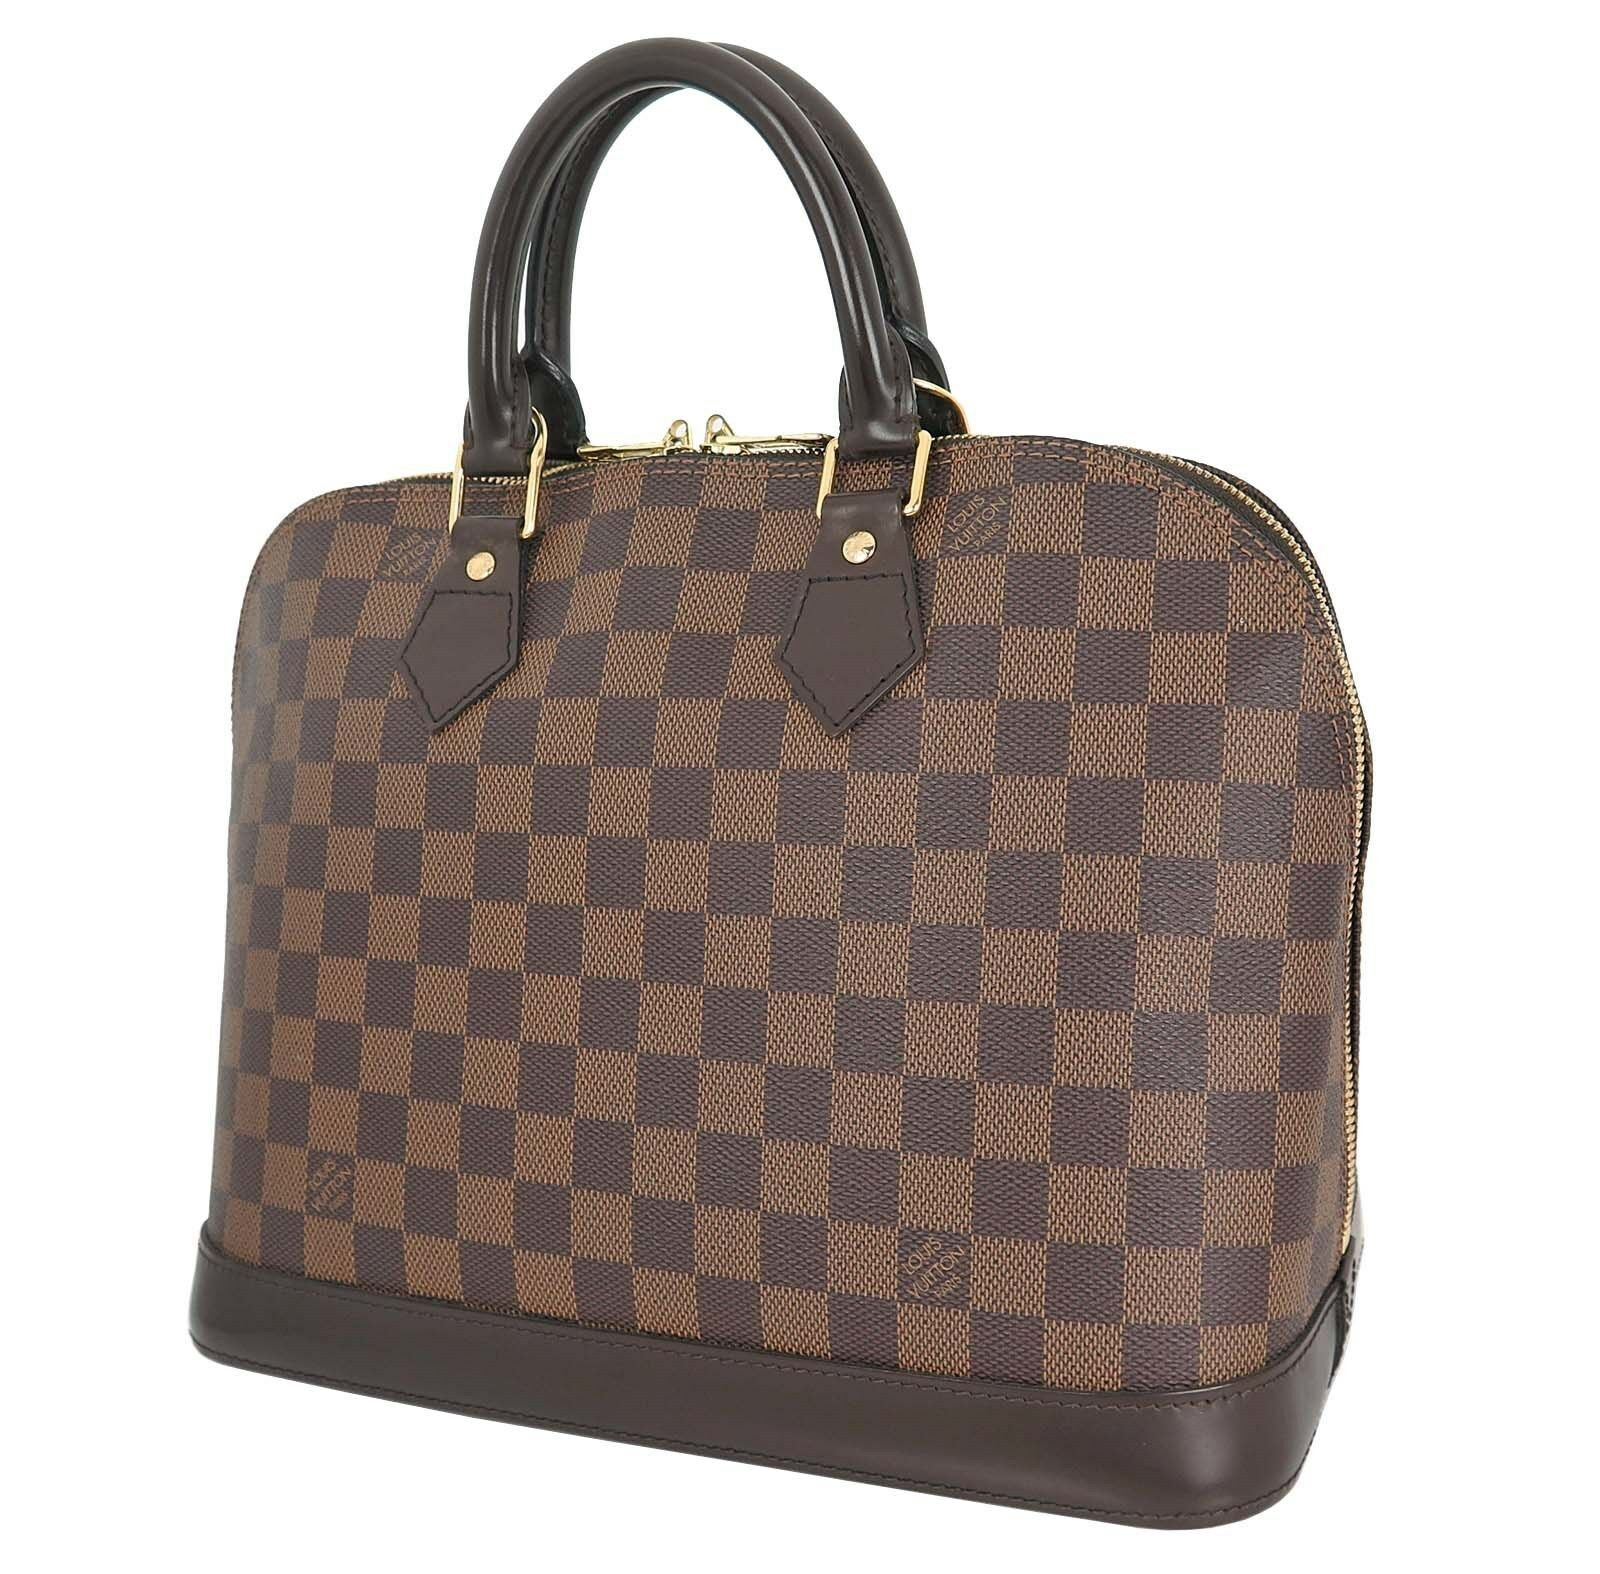 Authentic LOUIS VUITTON Alma Damier Ebene Tote Hand Bag Purse #18839